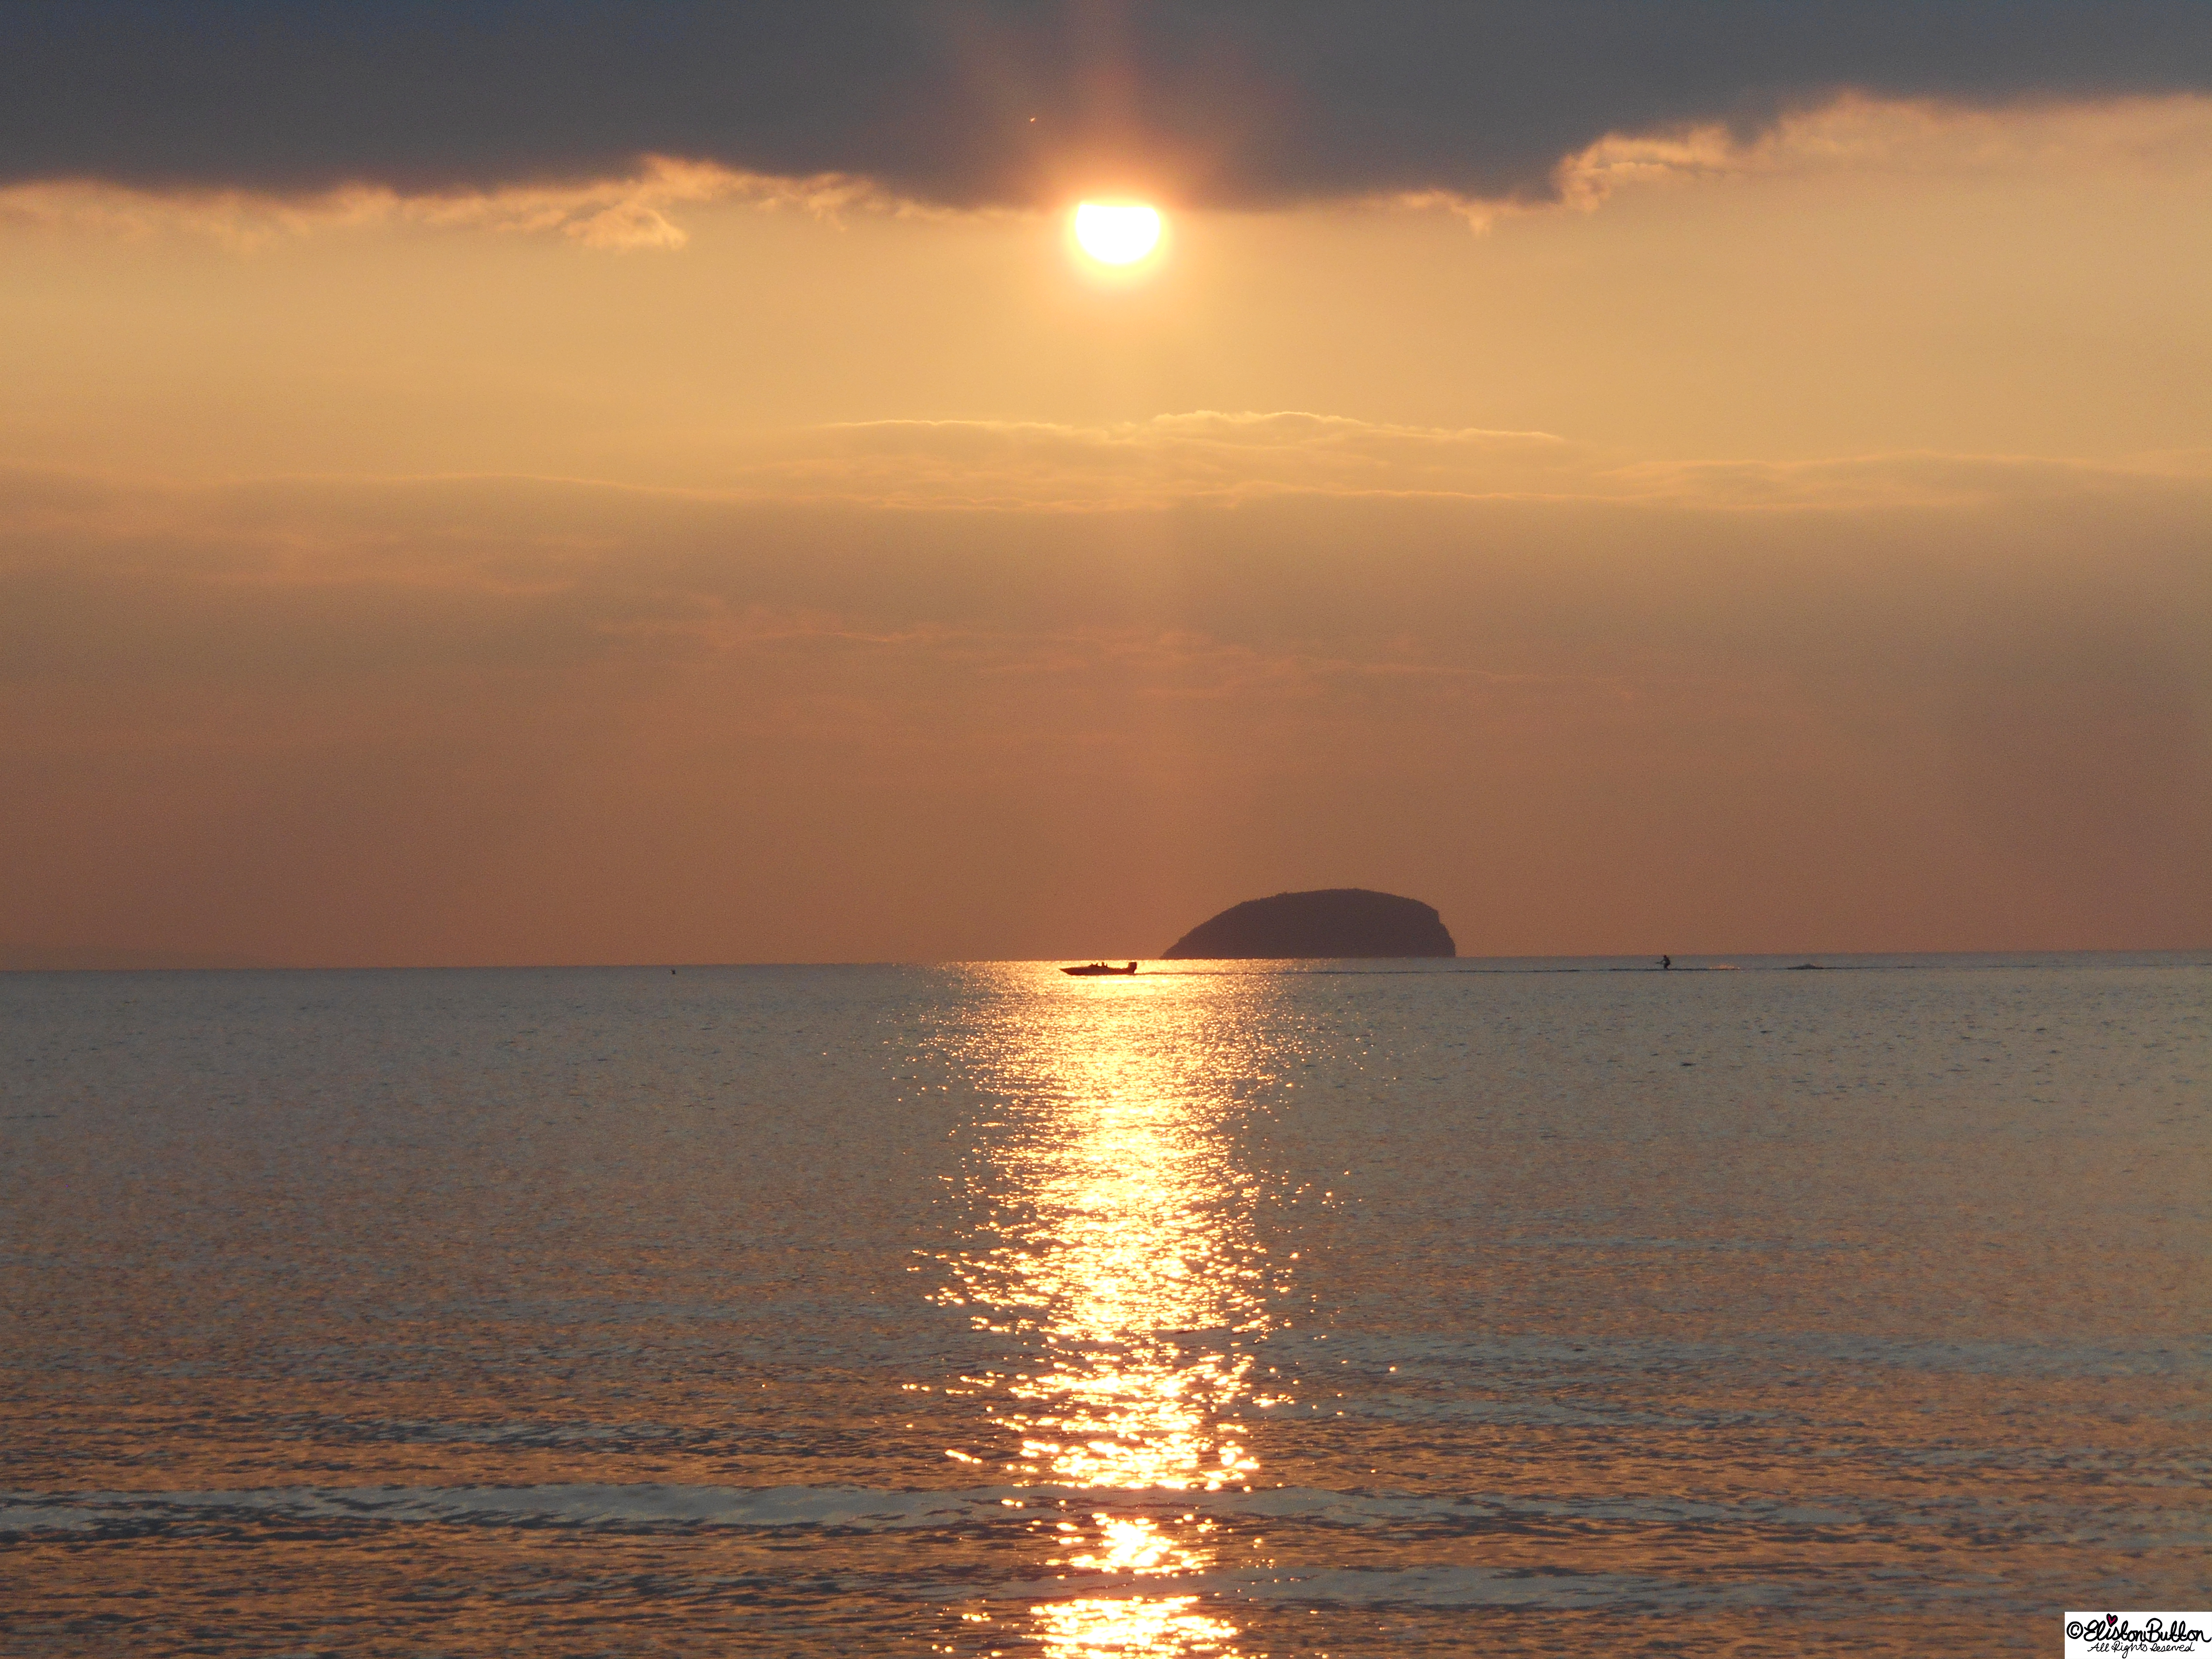 Steep Holm Sunset - The Great British Seaside (and an Eliston Button Autumn Sale) at www.elistonbutton.com - Eliston Button - That Crafty Kid – Art, Design, Craft & Adventure.